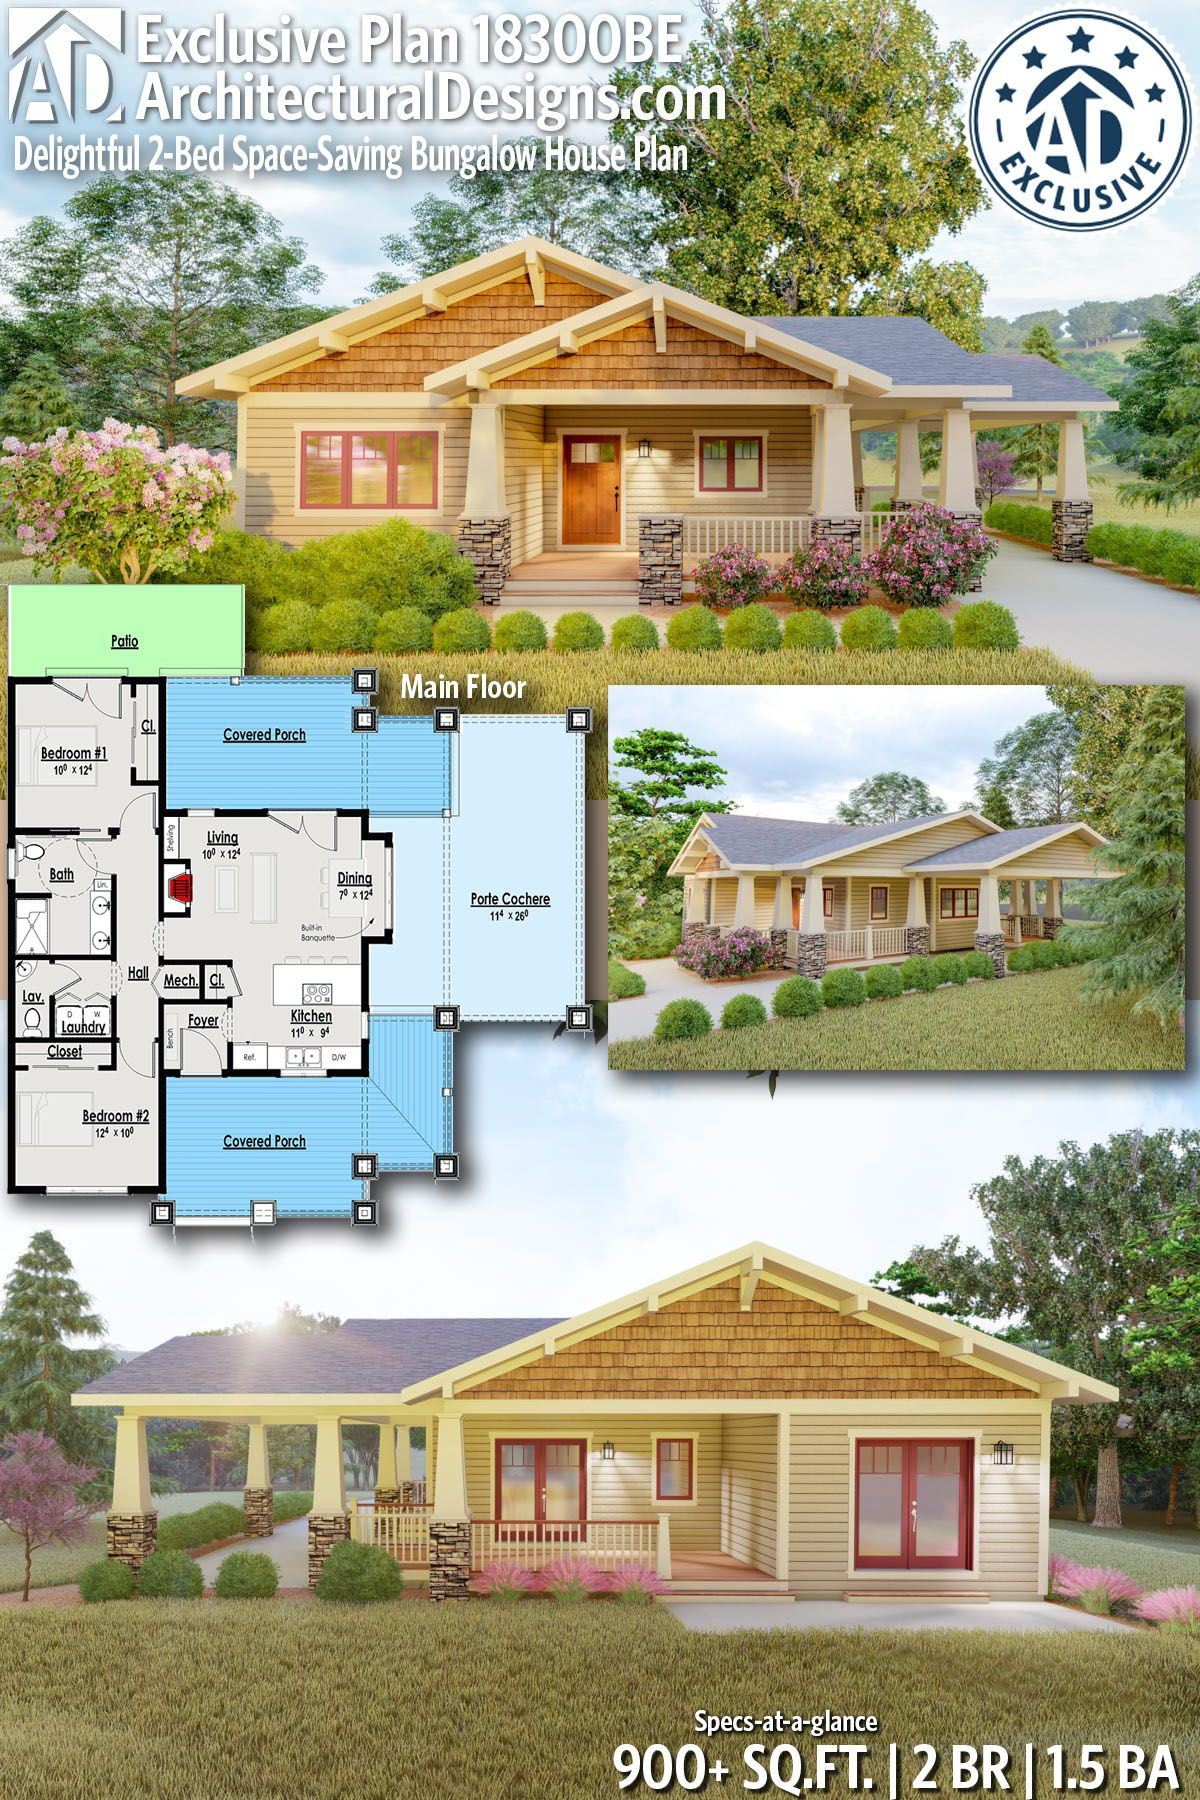 Architectural designs exclusive bungalow house plan be gives you bedrooms baths and also delightful bed space saving in rh pinterest